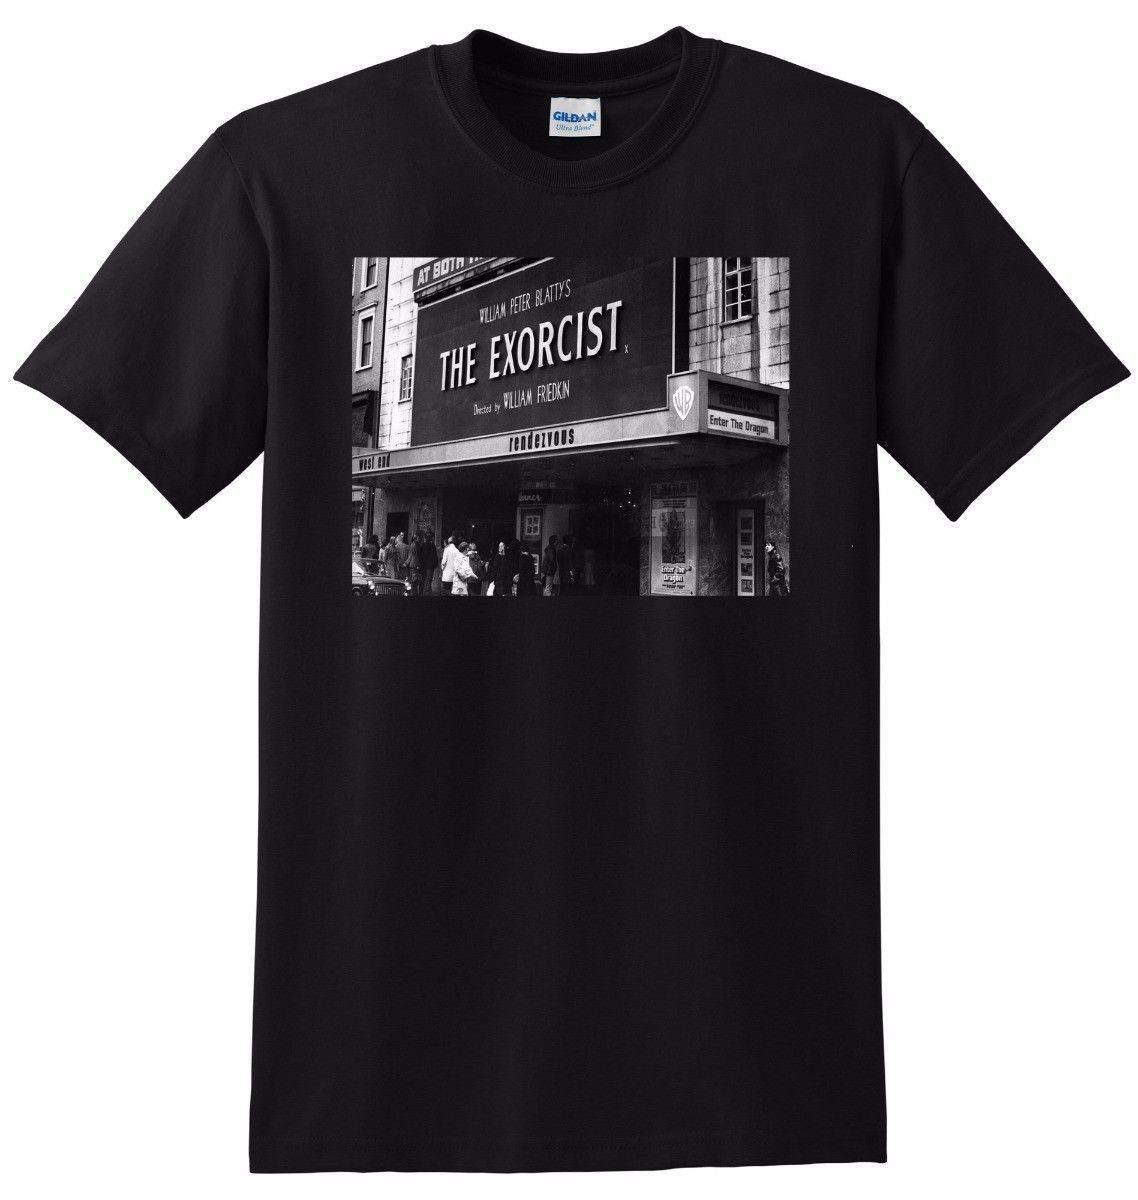 New The Exorcist T Shirt Movie Theater Small Medium Large Or Xl